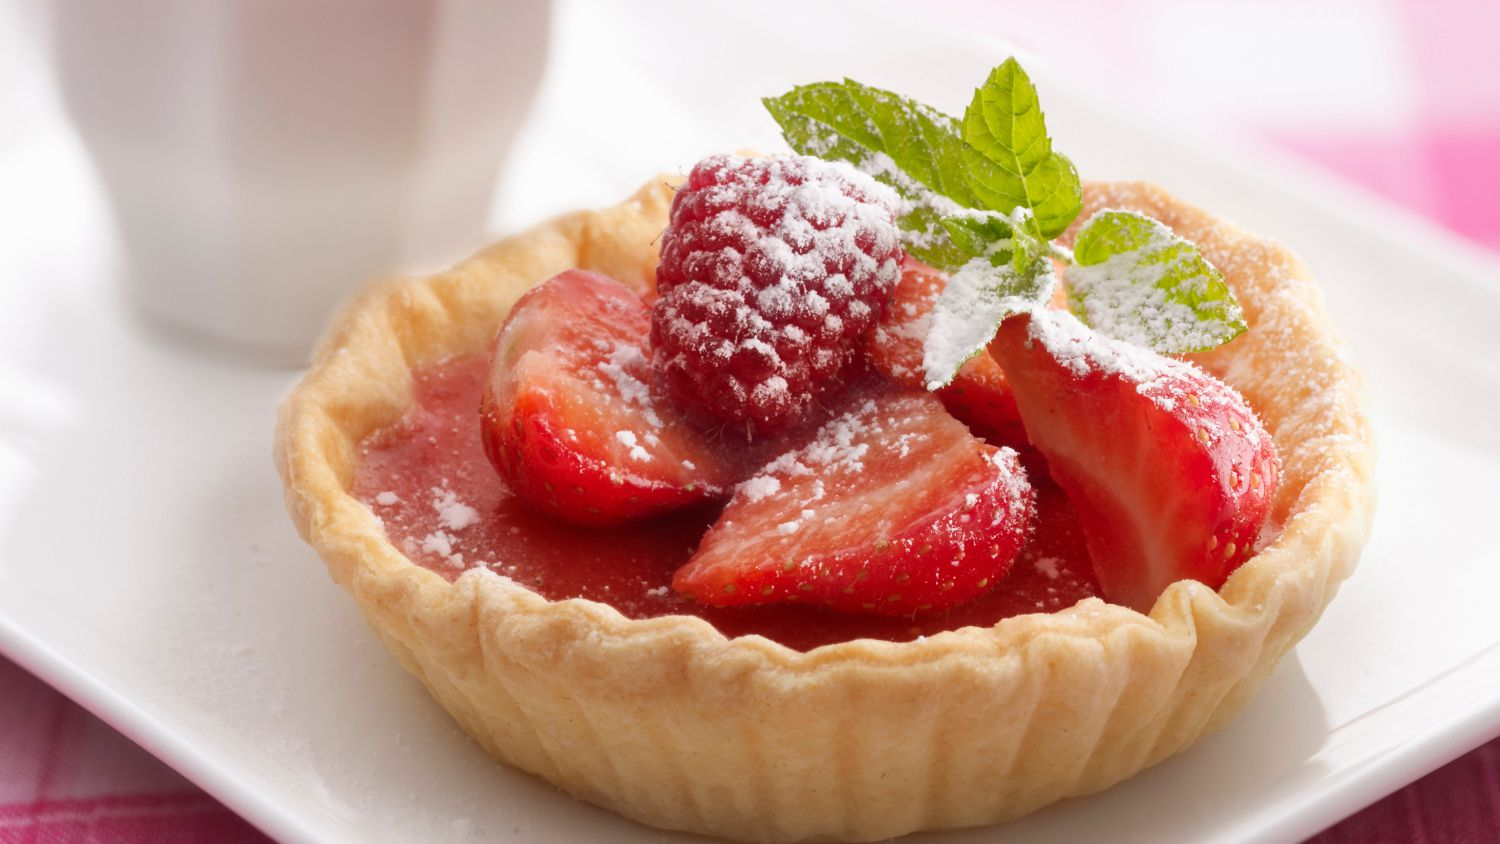 Sweet Short Dough Pastry Recipe (for Tarts and Pies)